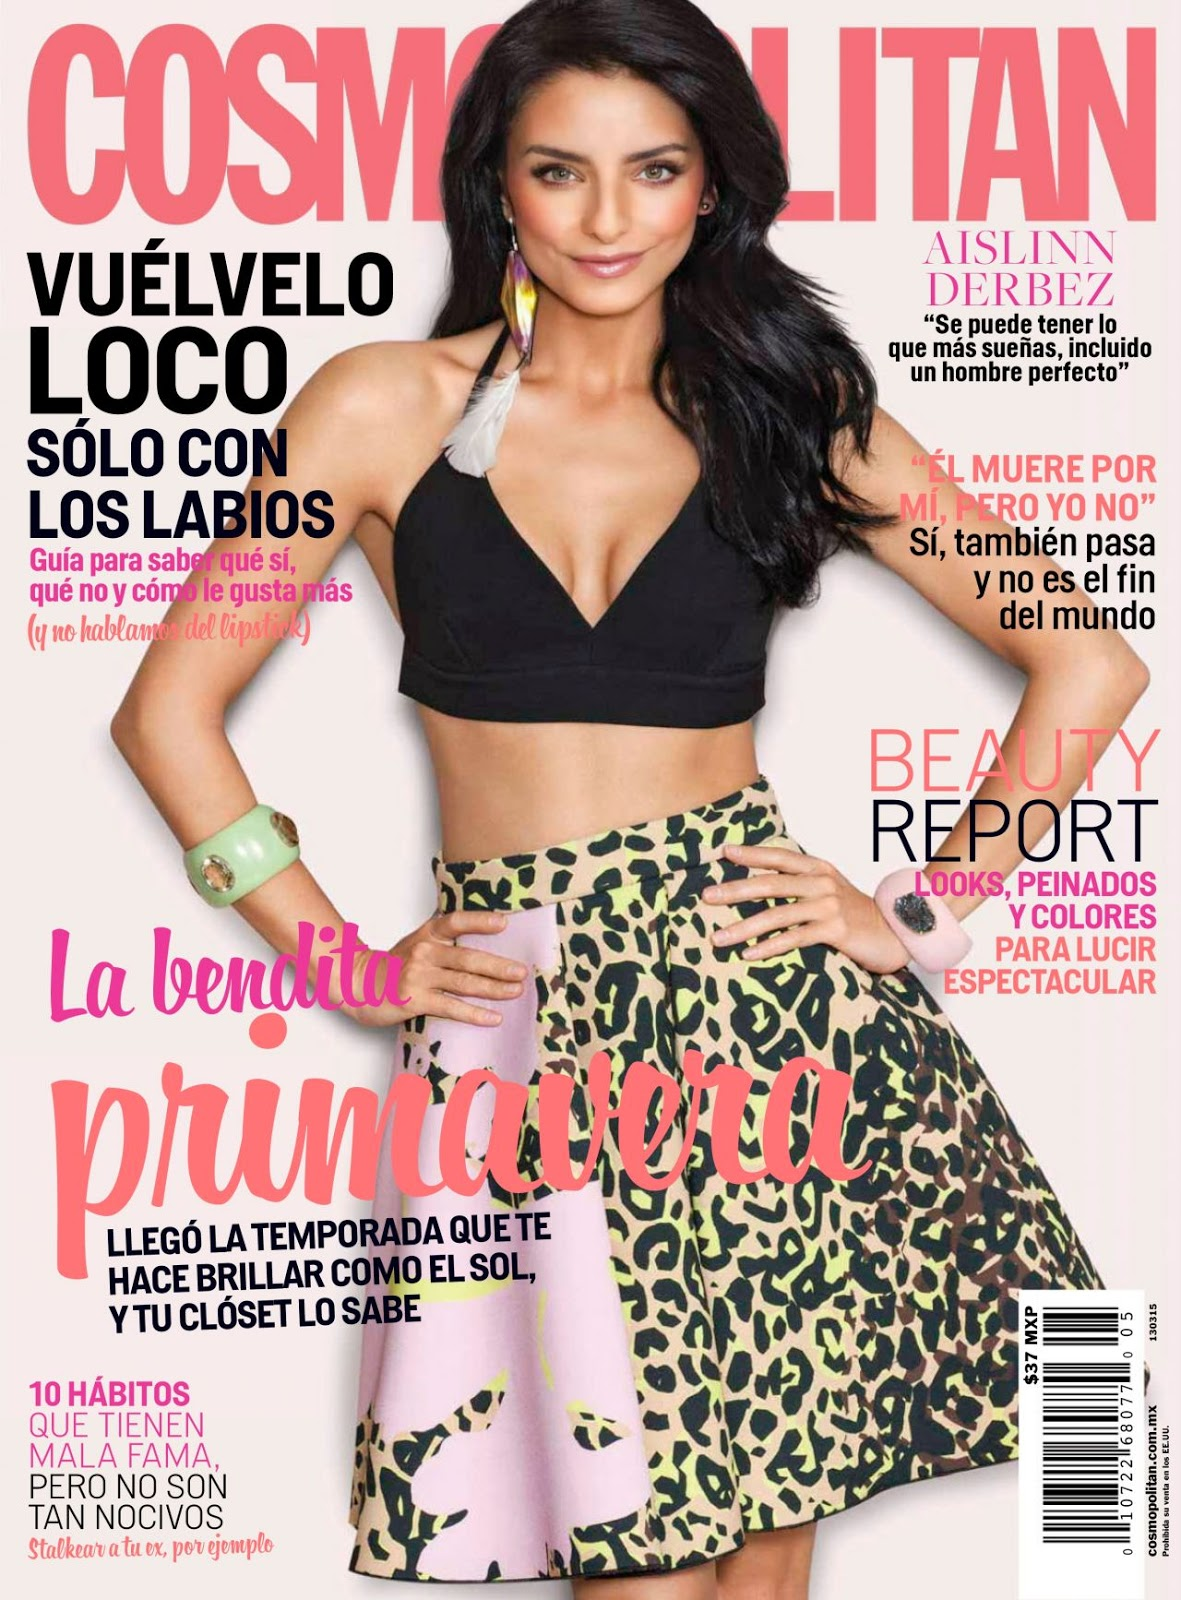 Actress, Model @ Aislinn Derbez - Cosmopolitan Mexico 2015 Issue